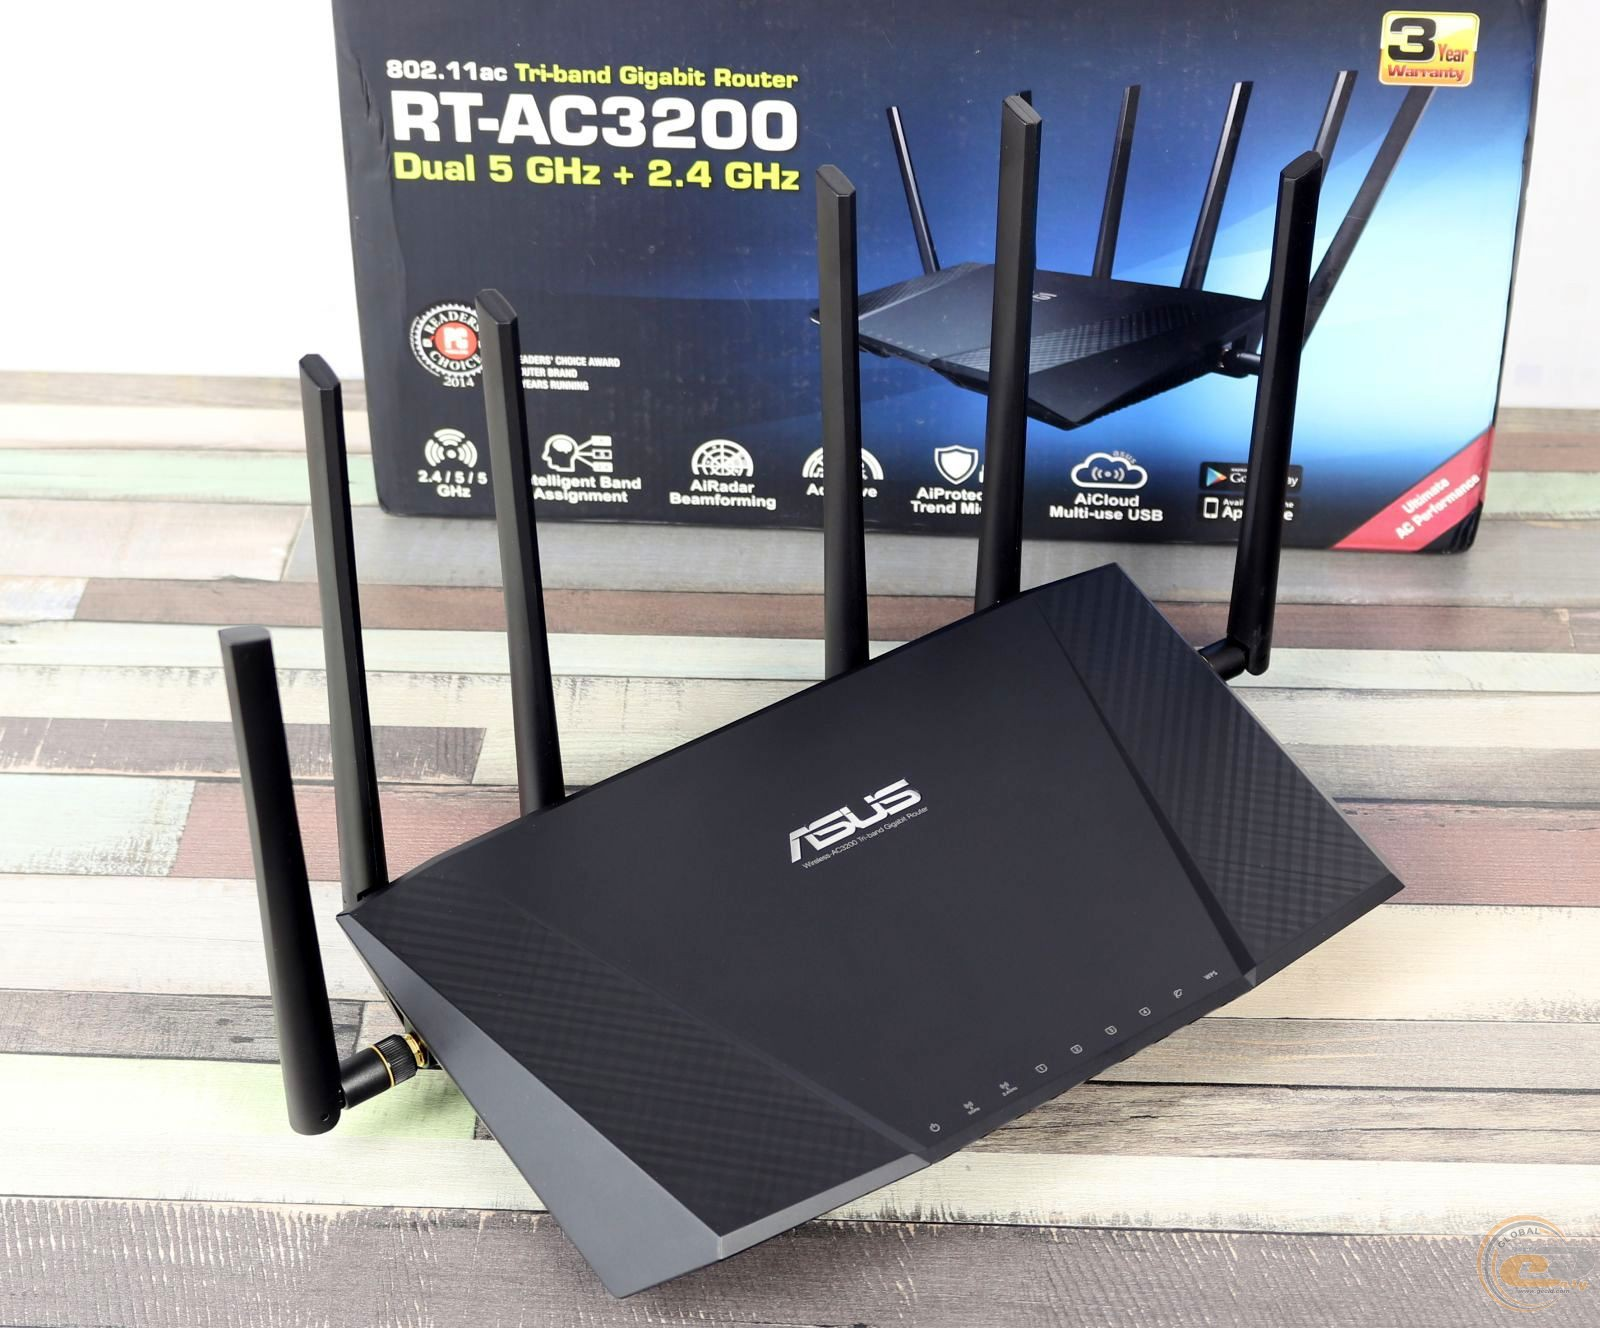 Asus Rt Ac3200 Tri Band Wireless Gigabit Router 1